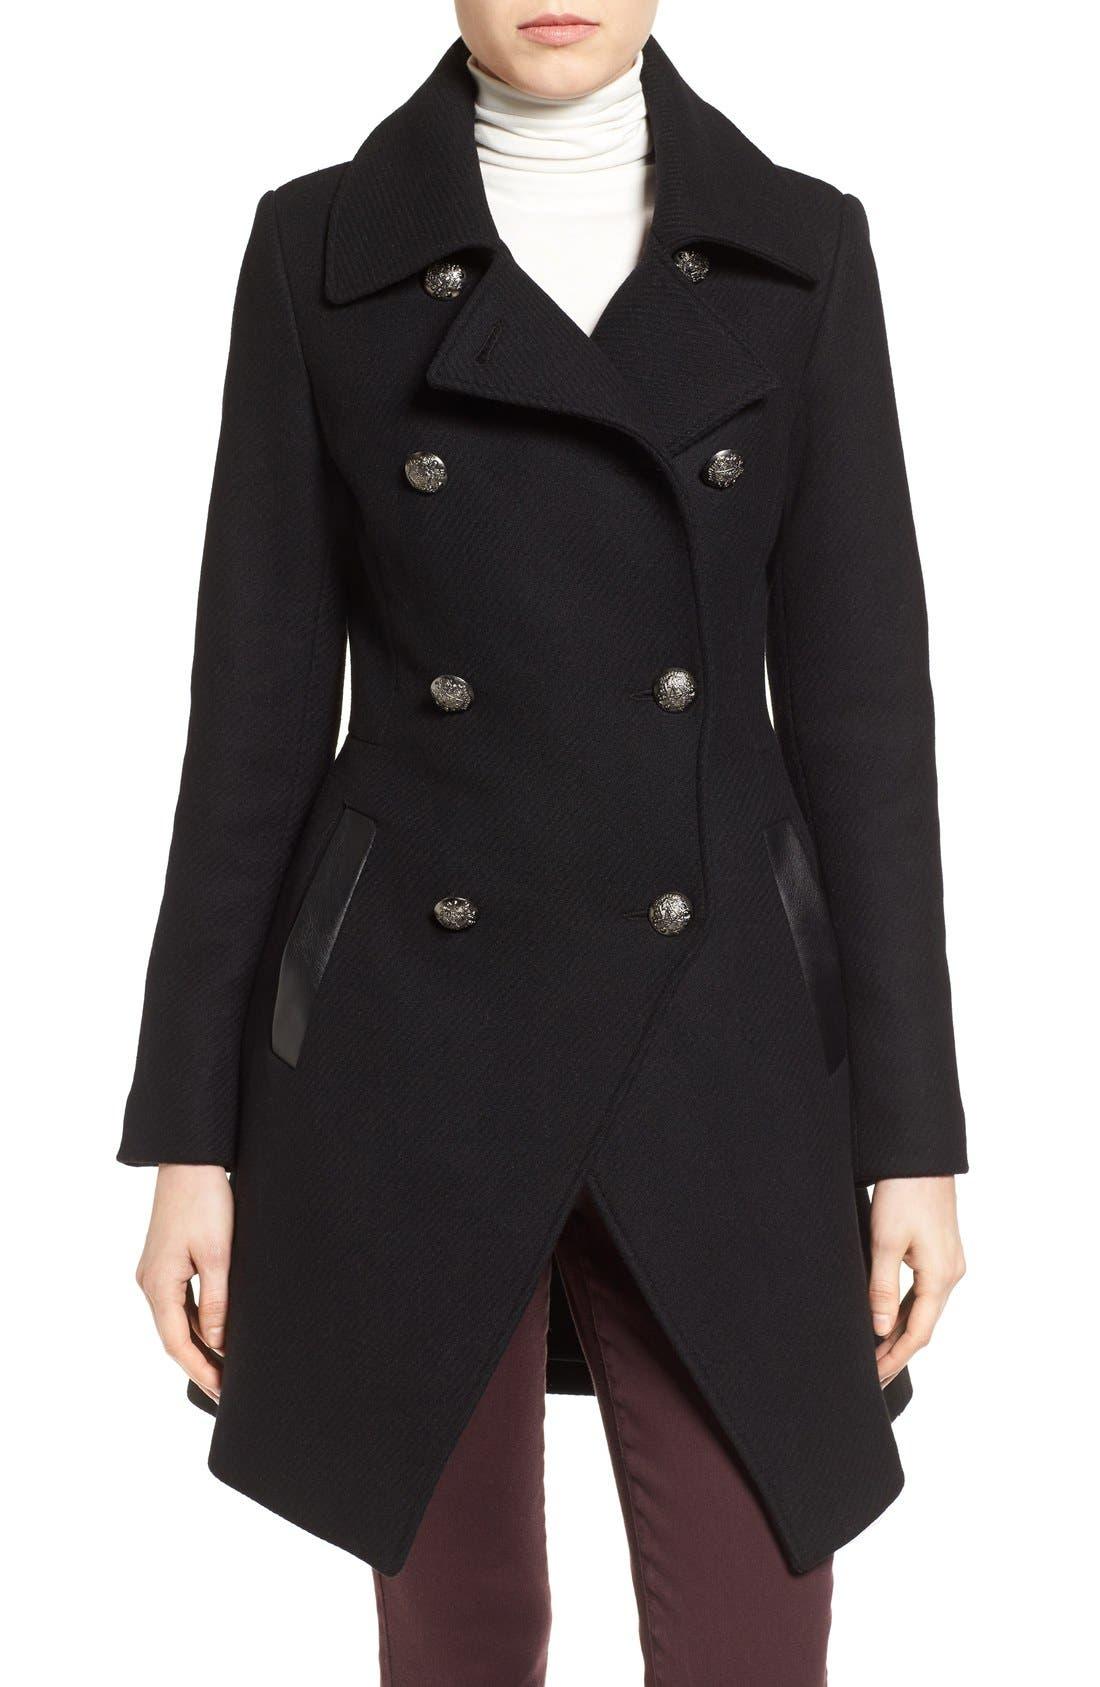 Trina Turk Wool Blend Military Coat (Regular & Petite)